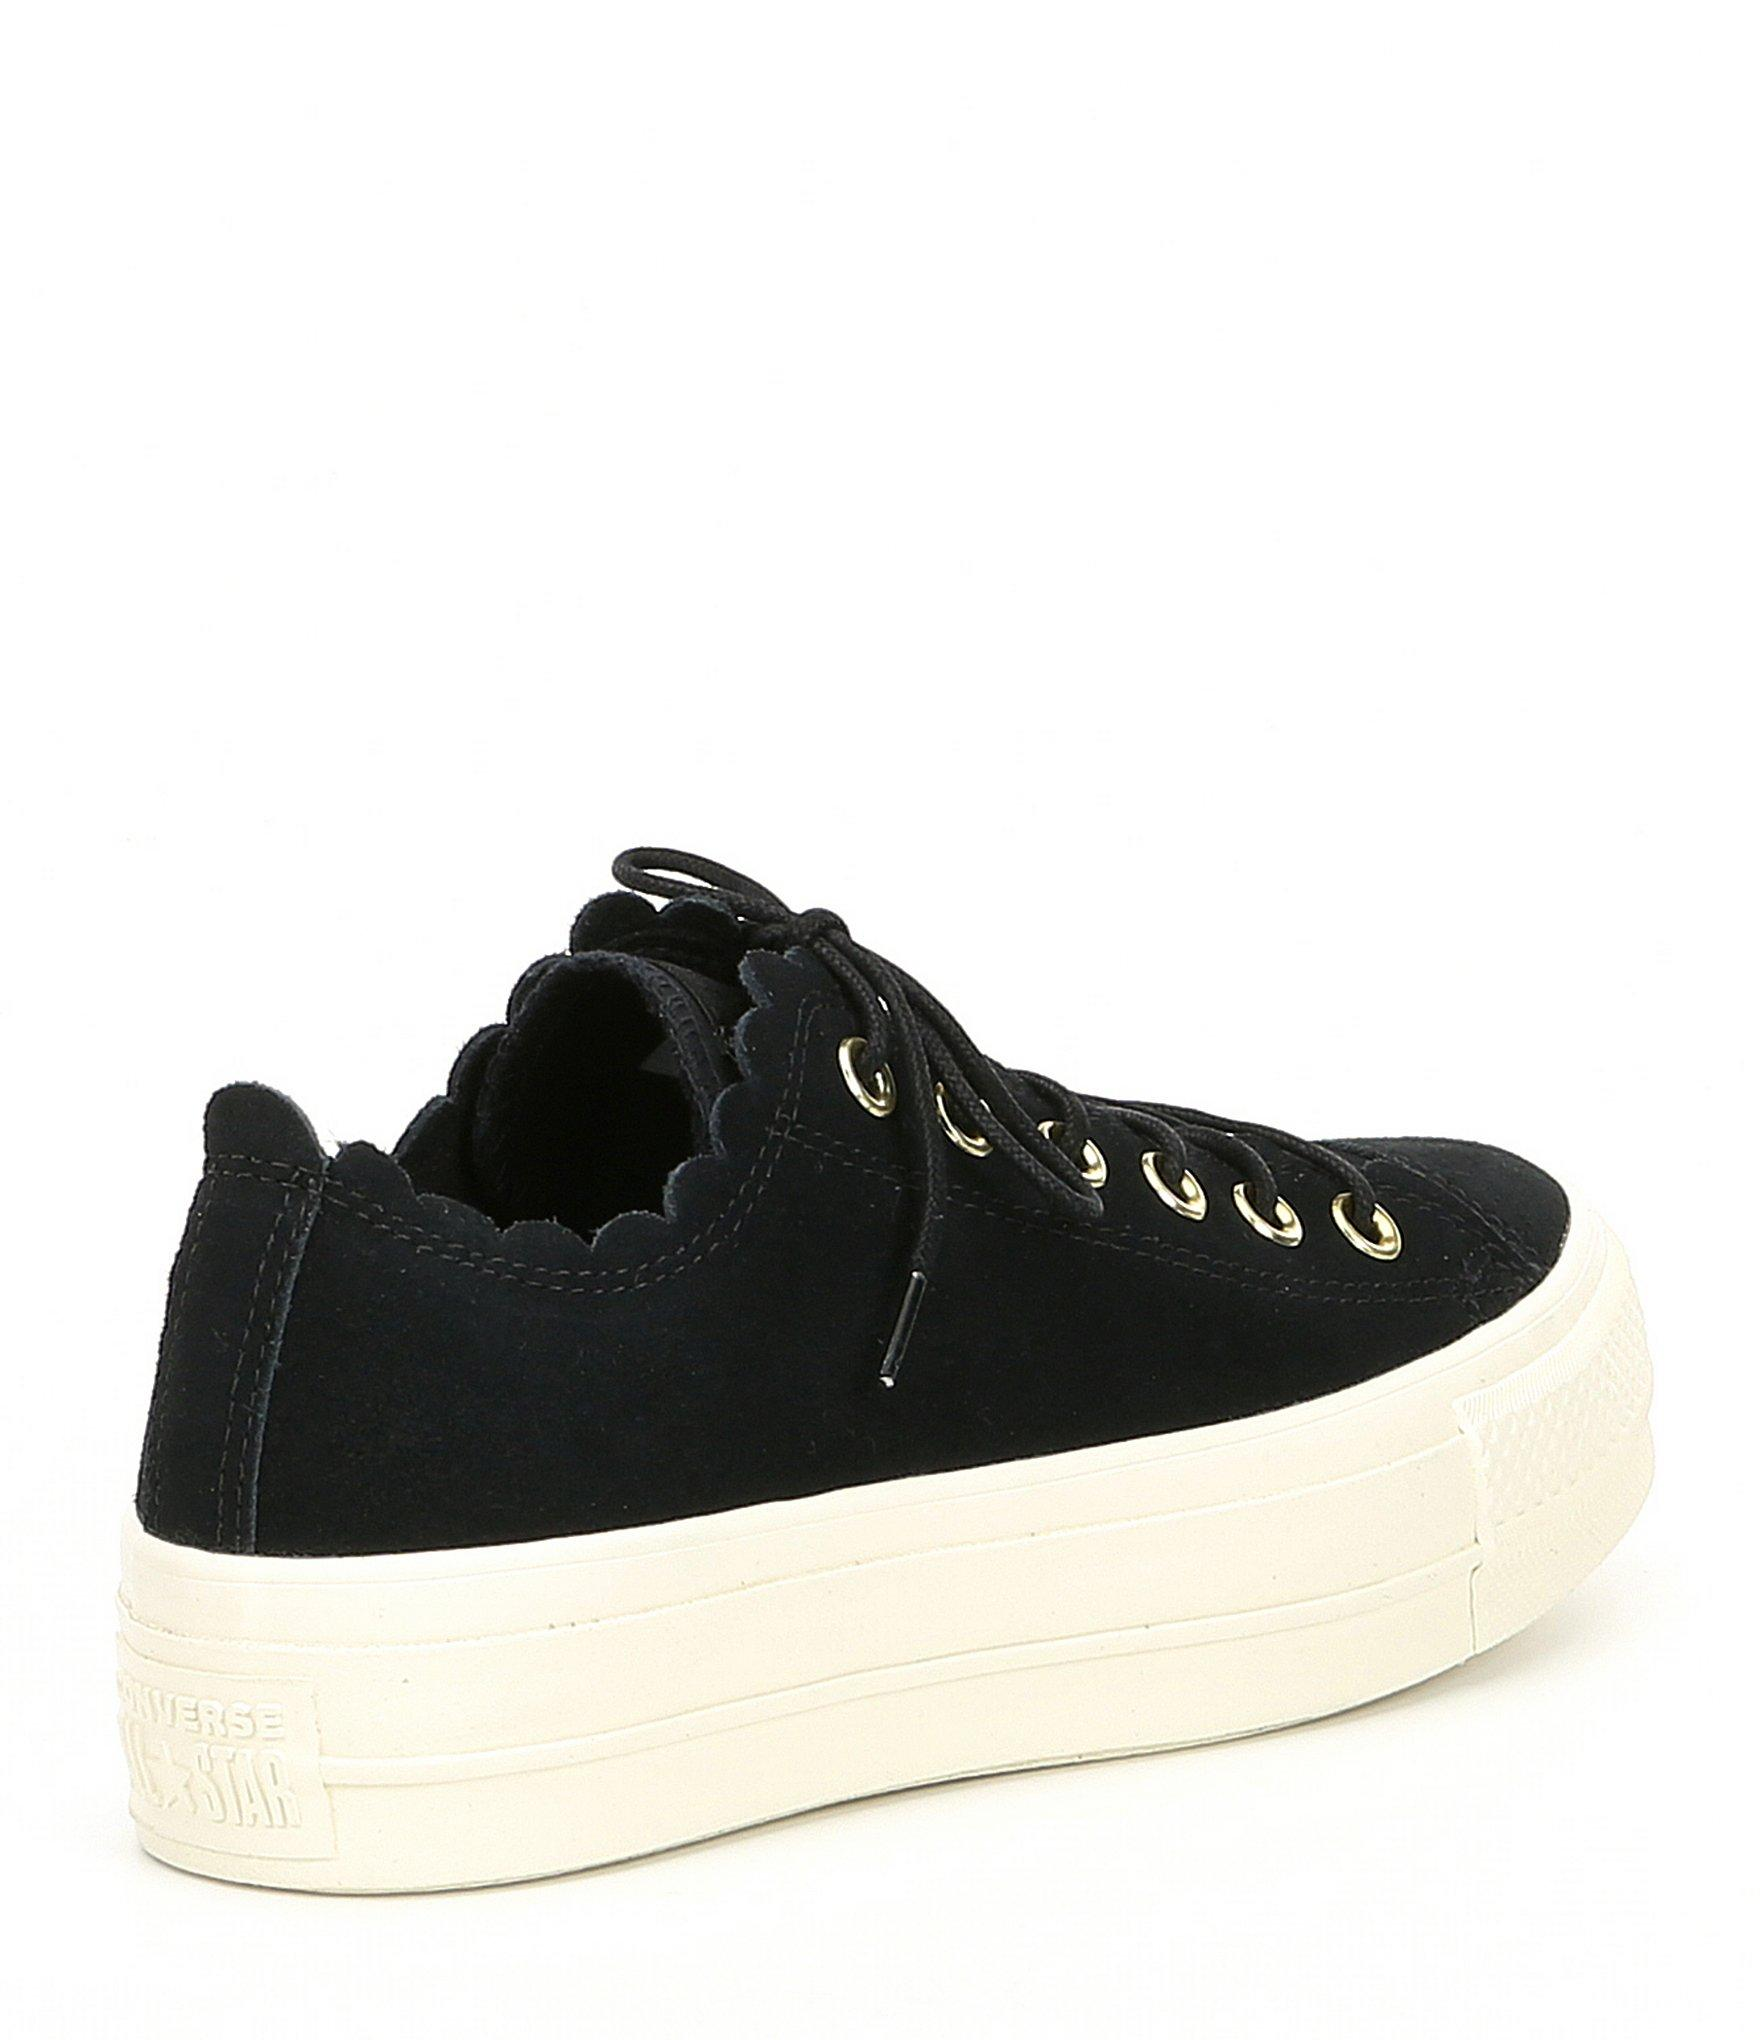 Converse - Black Women s Chuck Taylor All Star Frilly Thrills Platform  Sneakers - Lyst. View fullscreen 67a6043a17b4